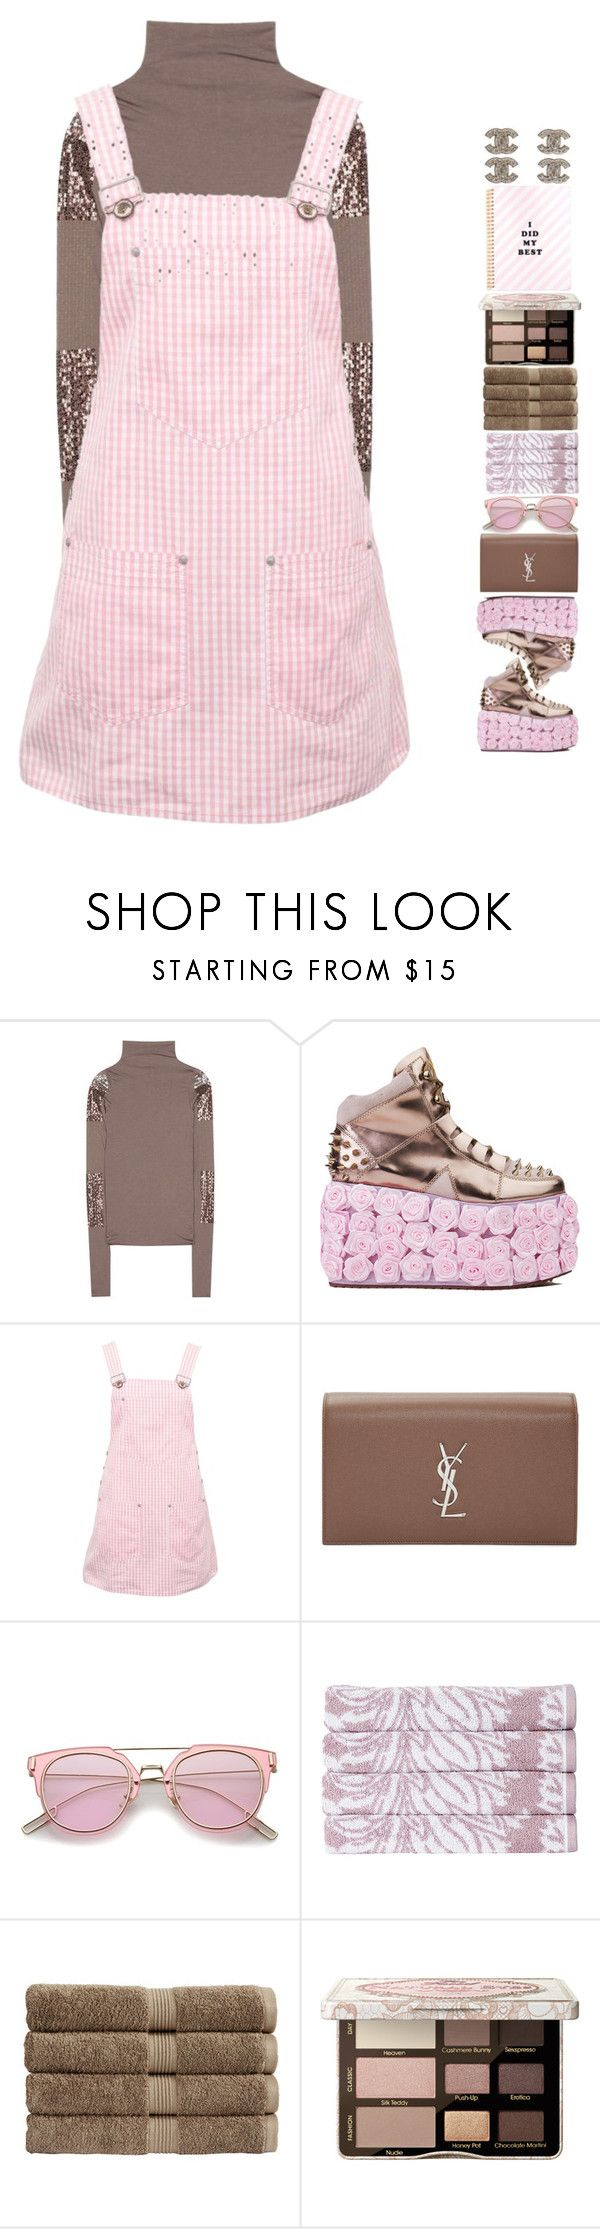 """""""5579"""" by tiffanyelinor ❤ liked on Polyvore featuring Rick Owens, Y.R.U., Versace Jeans Couture, Yves Saint Laurent, Christy, Too Faced Cosmetics and Chanel"""